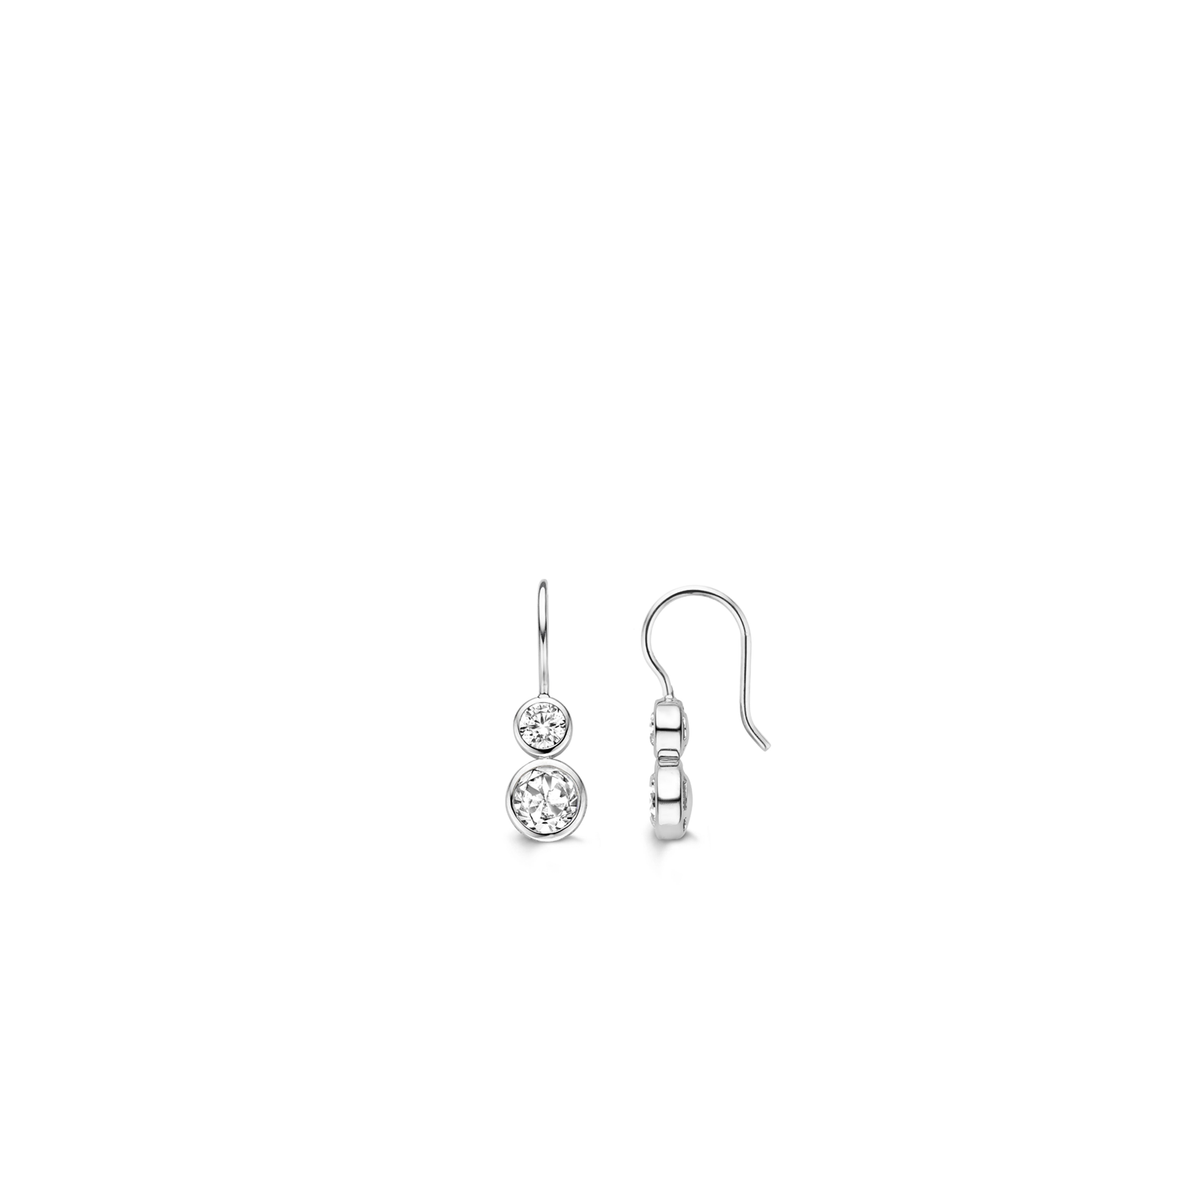 TI SENTO - Milano Earrings 7722ZI